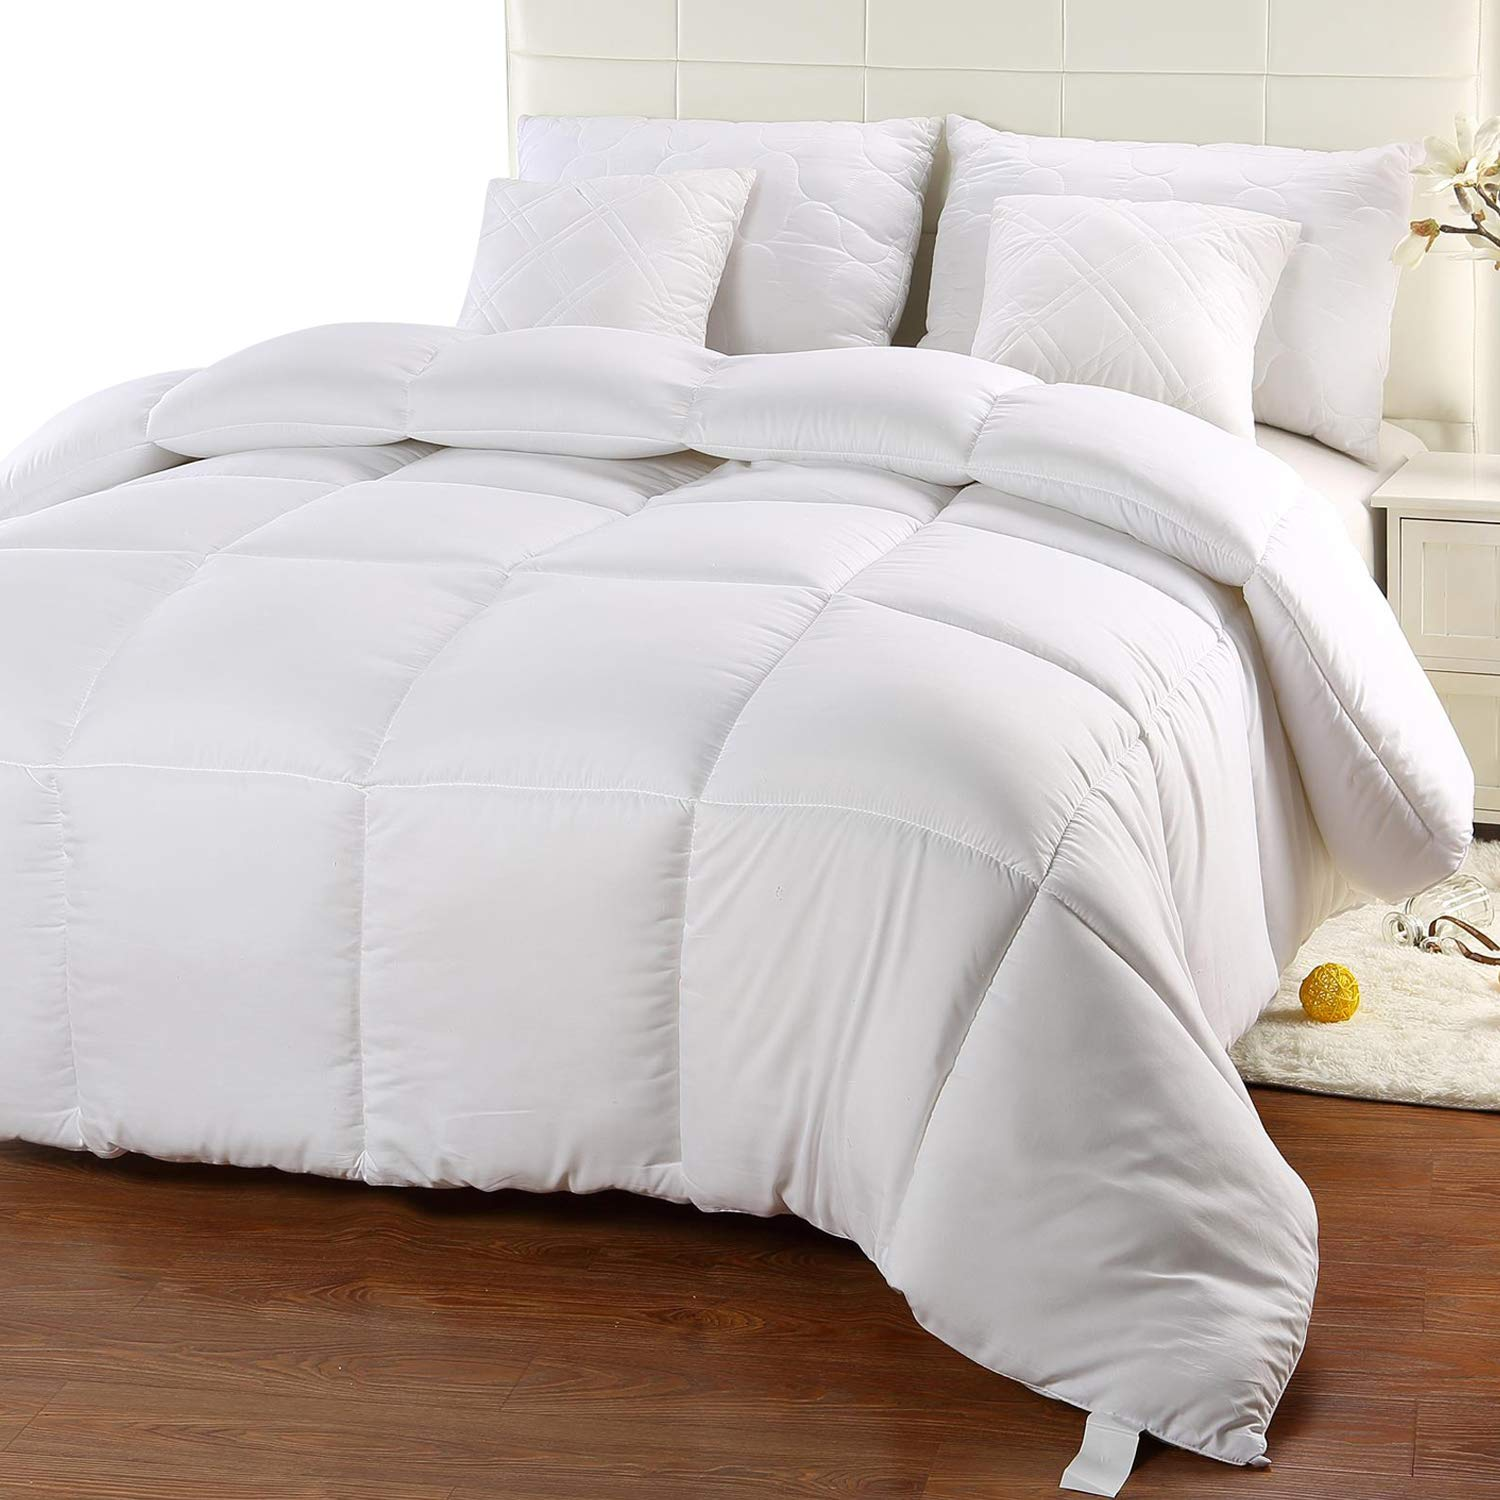 Best Rated in Duvets & Down Comforters & Helpful Customer